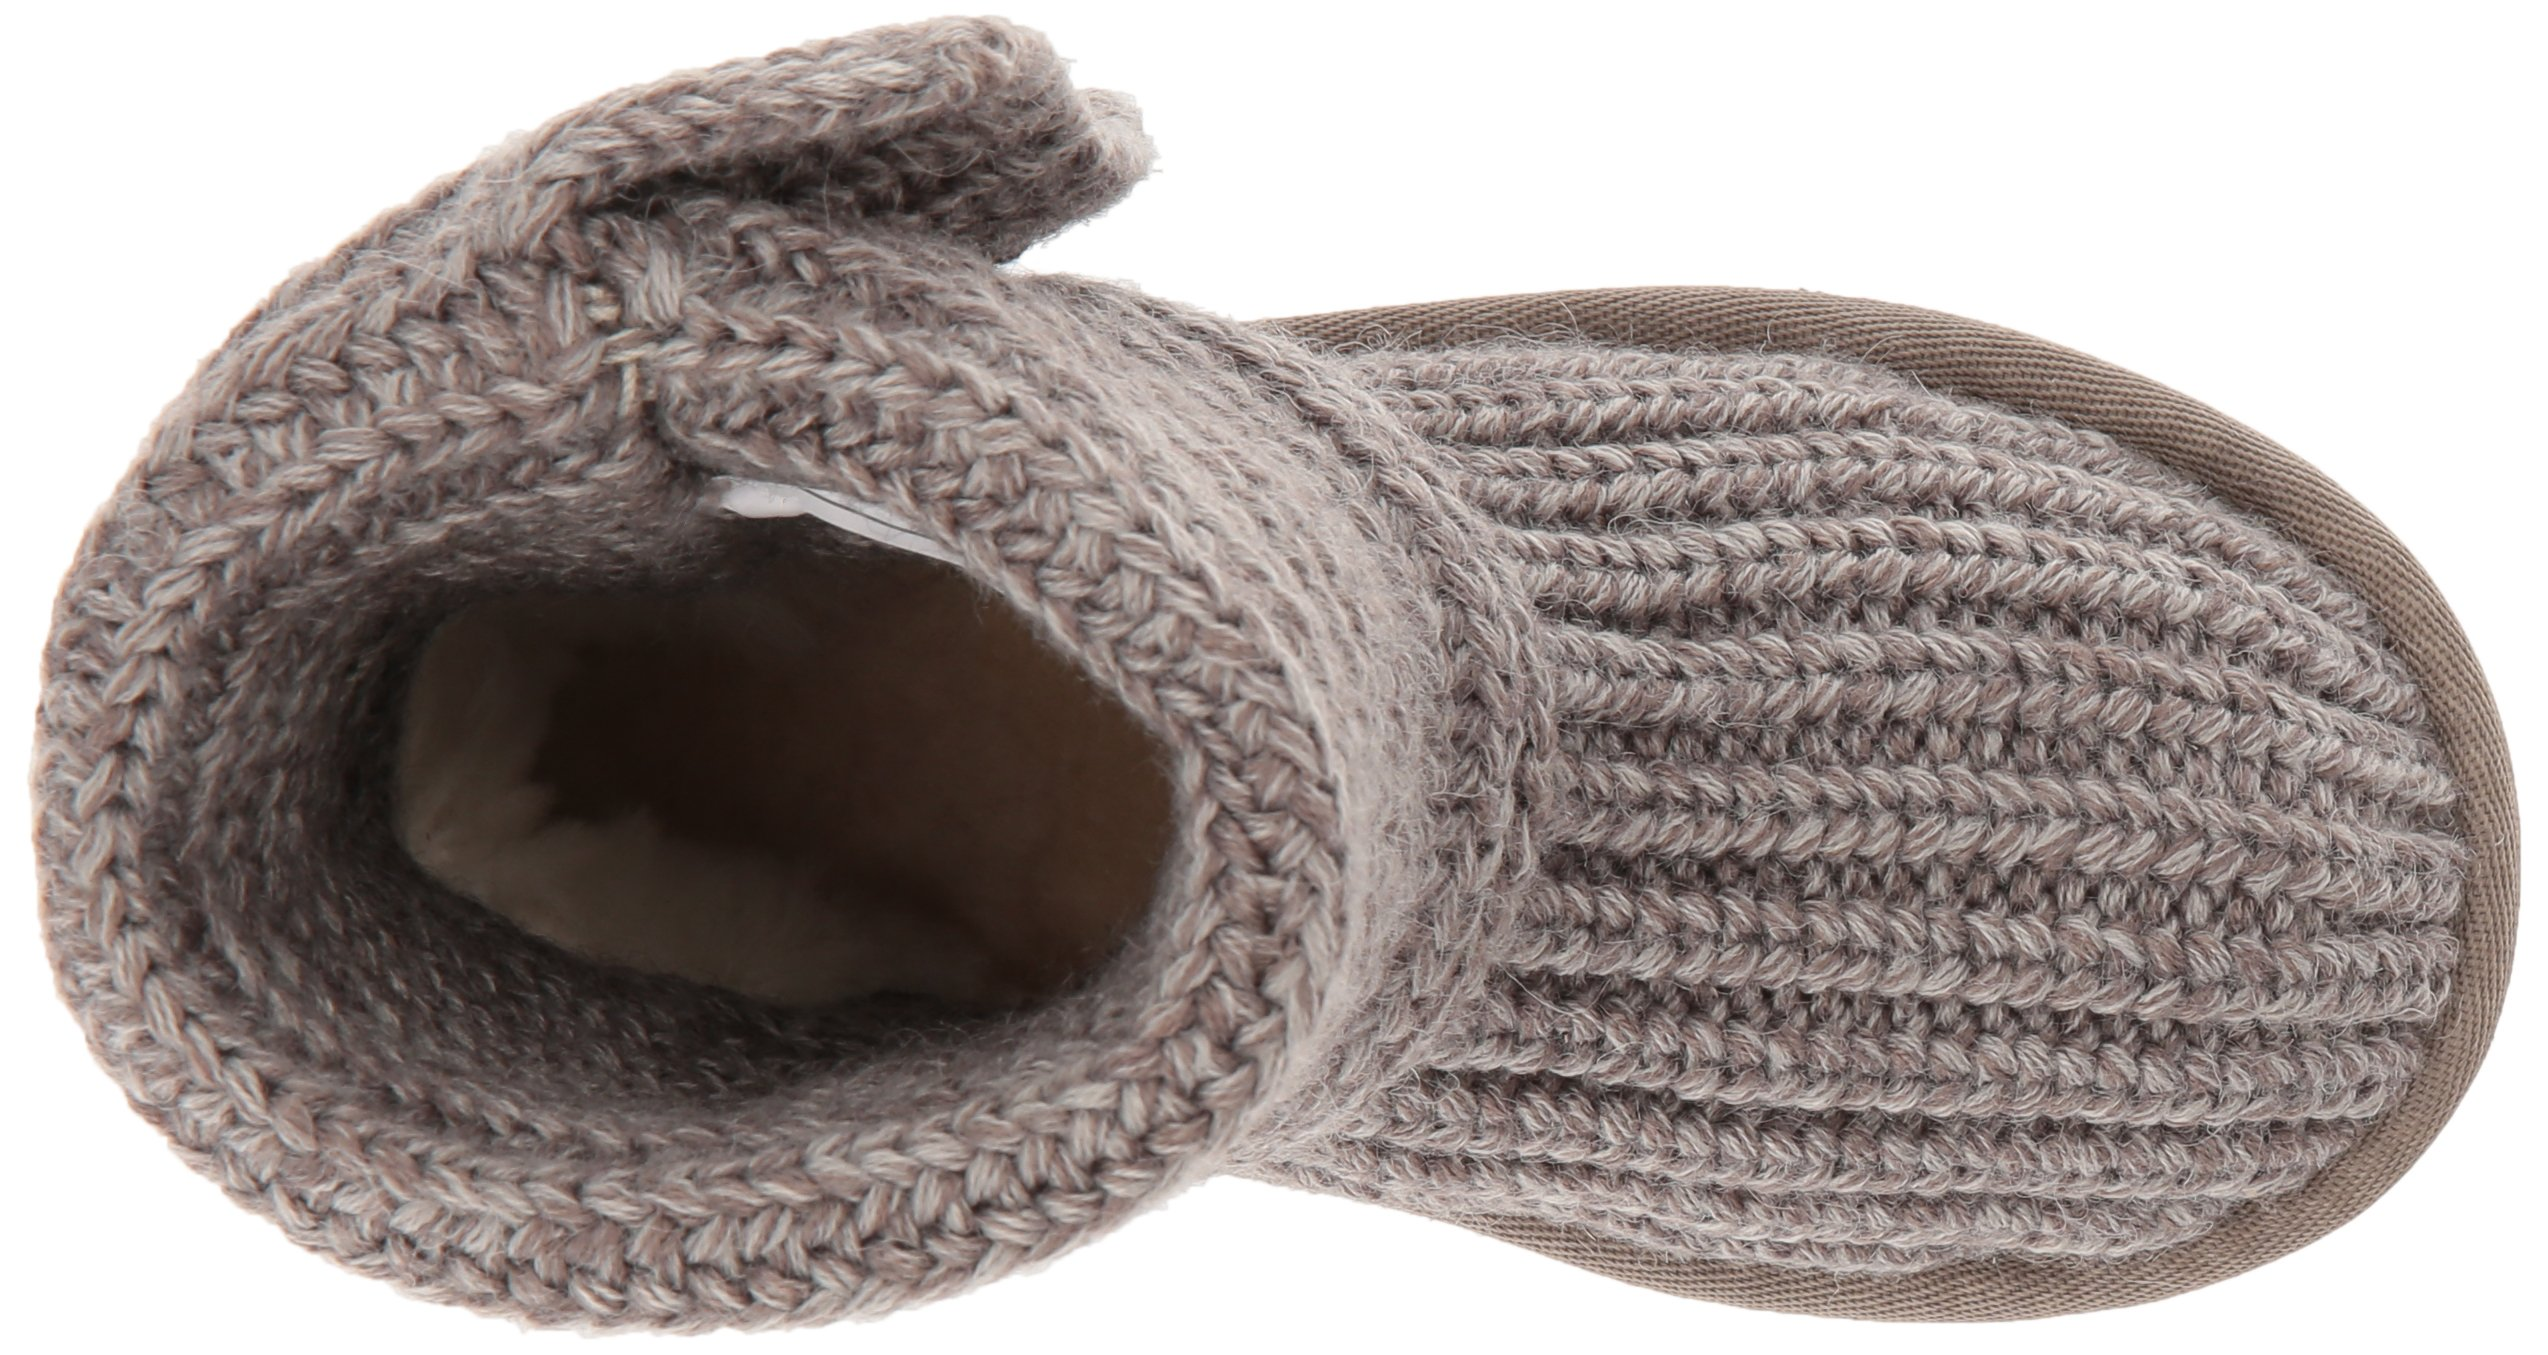 UGG Girls K Cardy II Pull-on Boot, Grey, 13 M US Little Kid by UGG (Image #8)